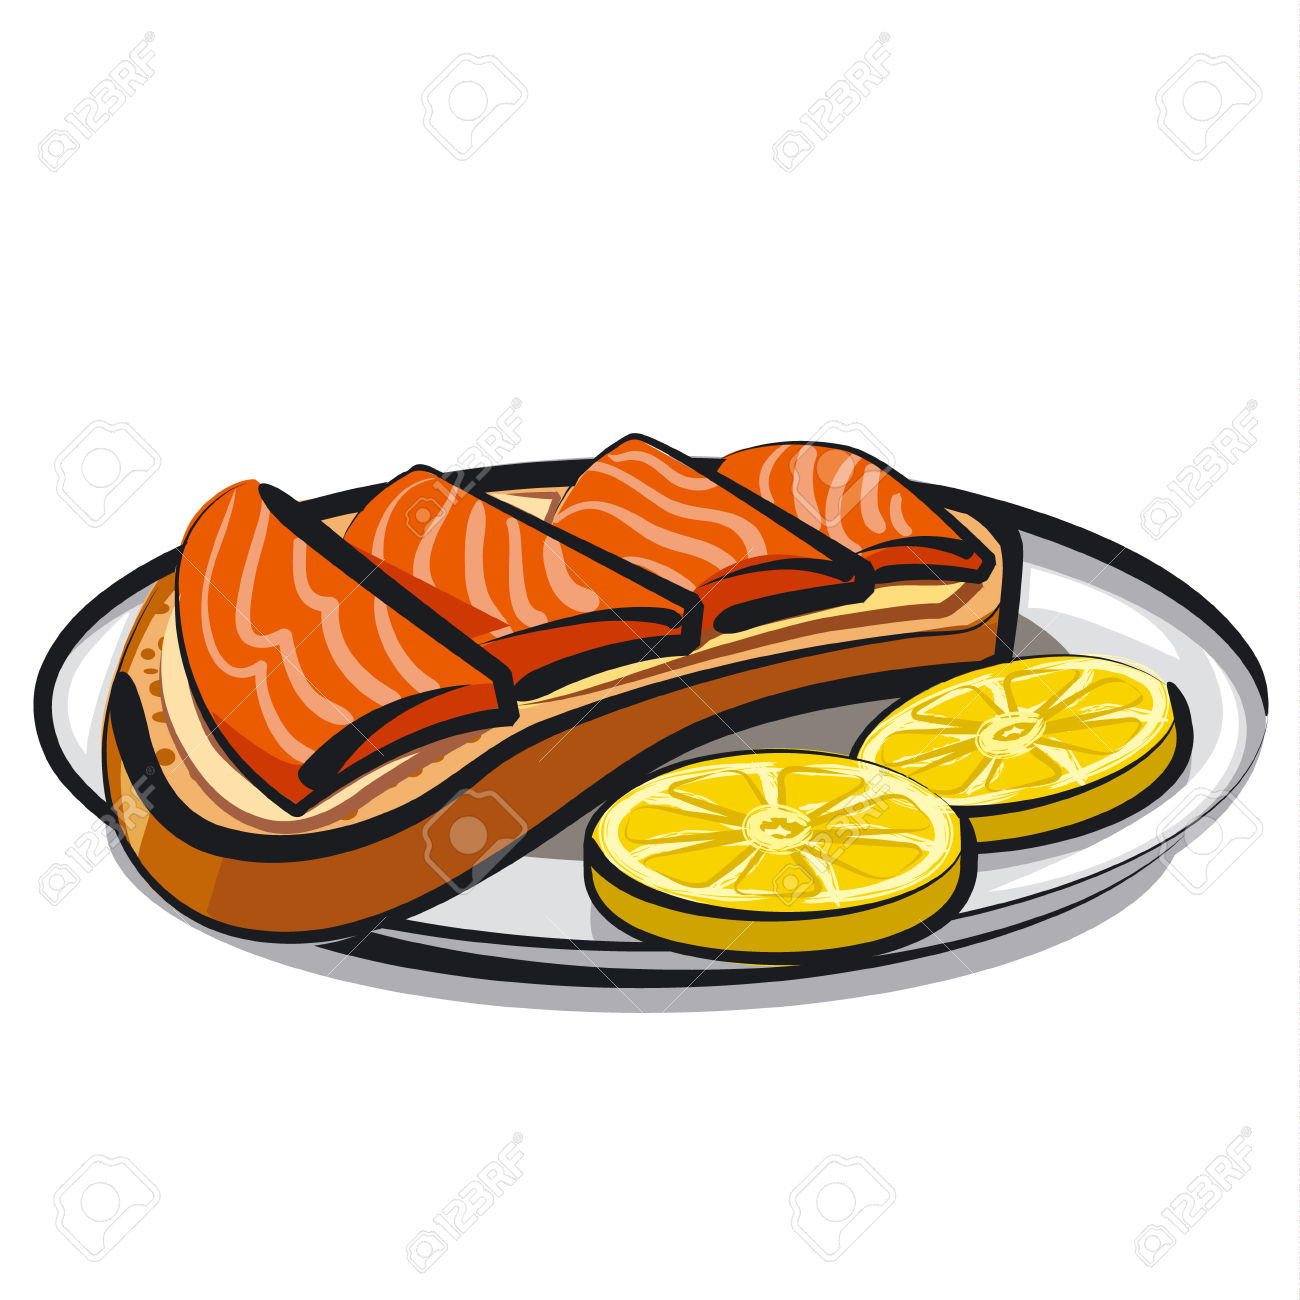 Salmon Sandwich Royalty Free Cliparts, Vectors, And Stock.